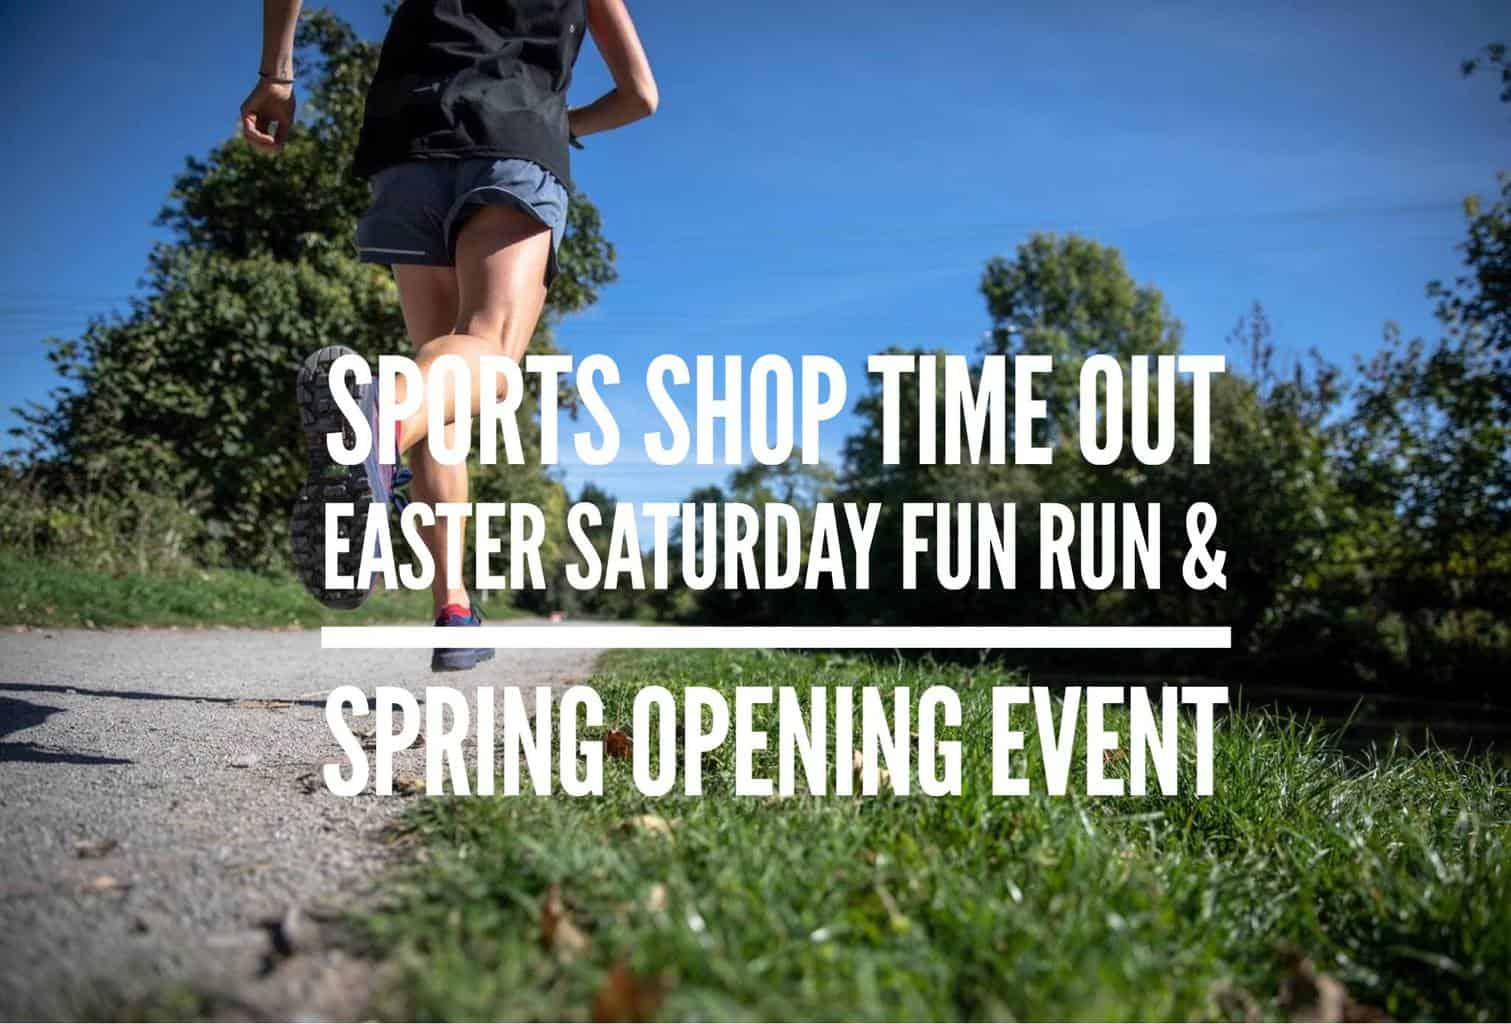 Sports Shop Time Out Fun Run & Spring Opening